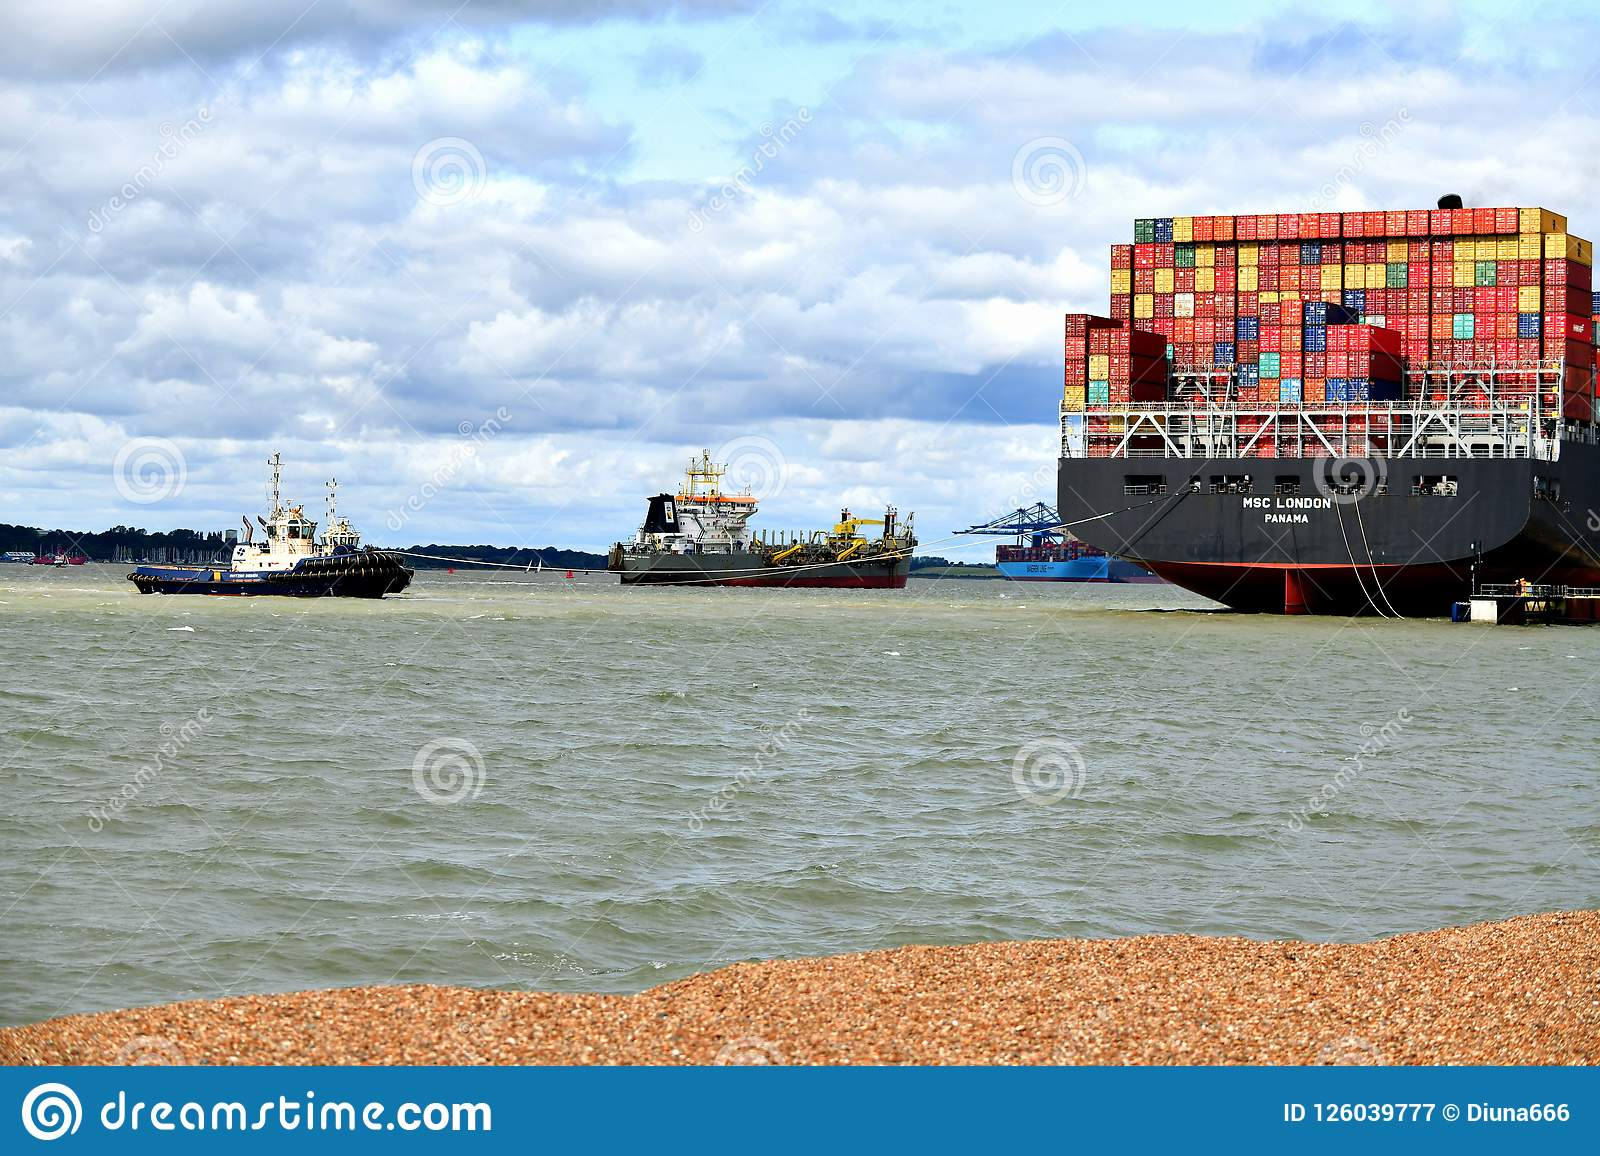 Tugs lead out a container ship from the port from Felixstowe UK